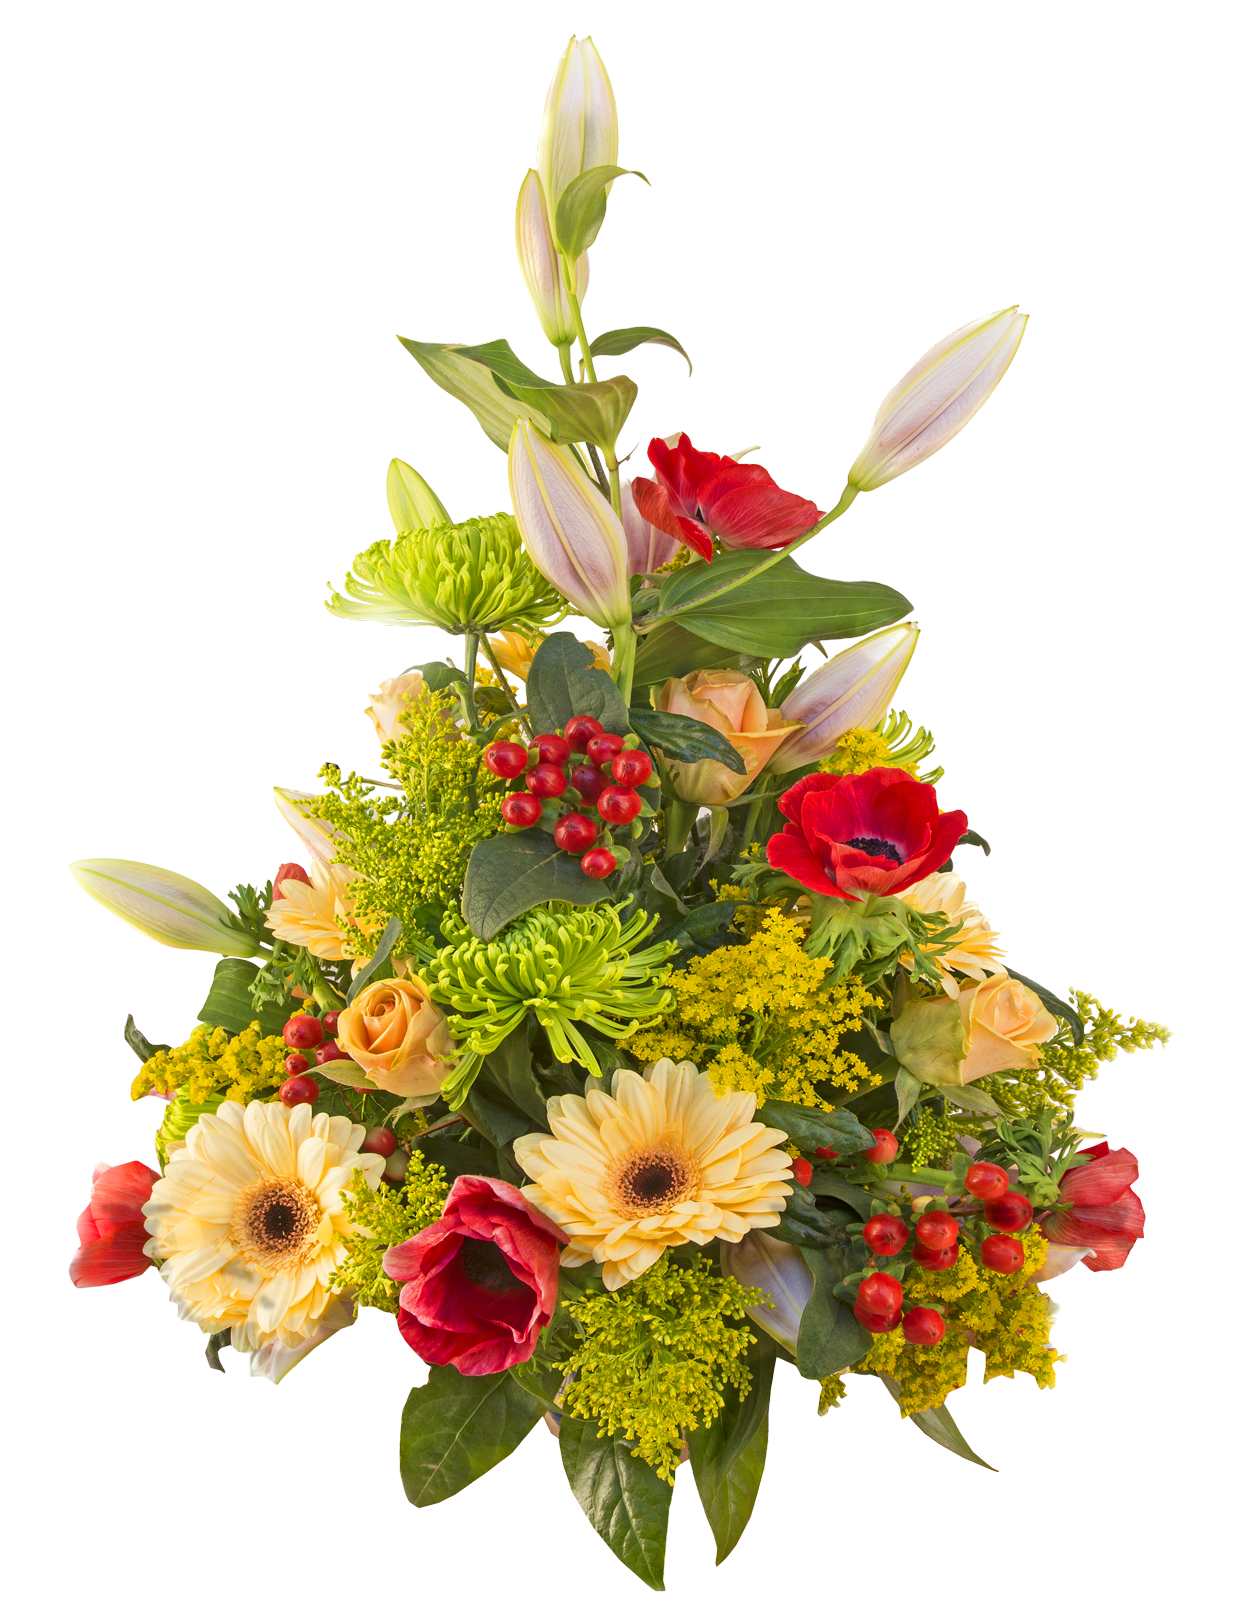 Bouquet of flowers high quality png web icons png best free bouquet of flowers png picture izmirmasajfo